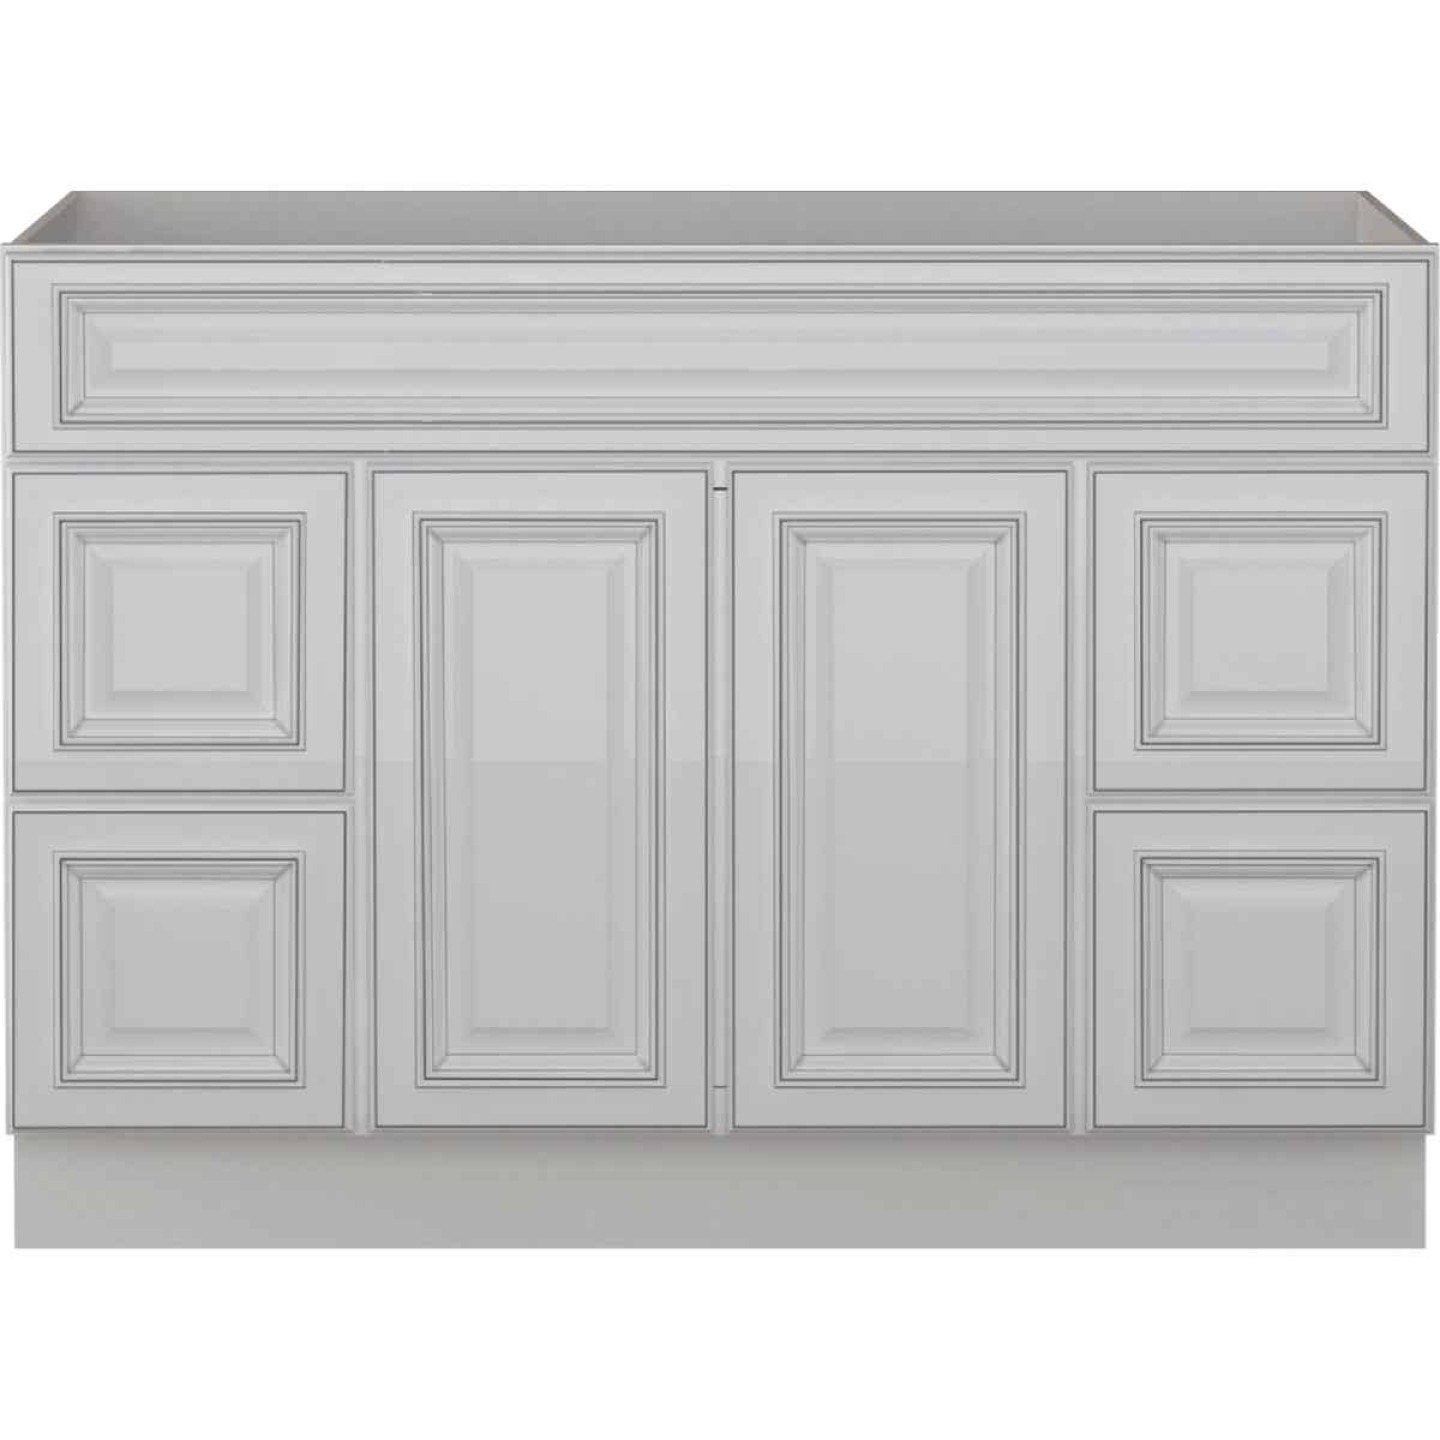 Sunny Wood Riley White with Dover Glaze 48 In. W x 34-1/2 In. H x 21 In. D Vanity Base, 2 Door/4 Drawer Image 1